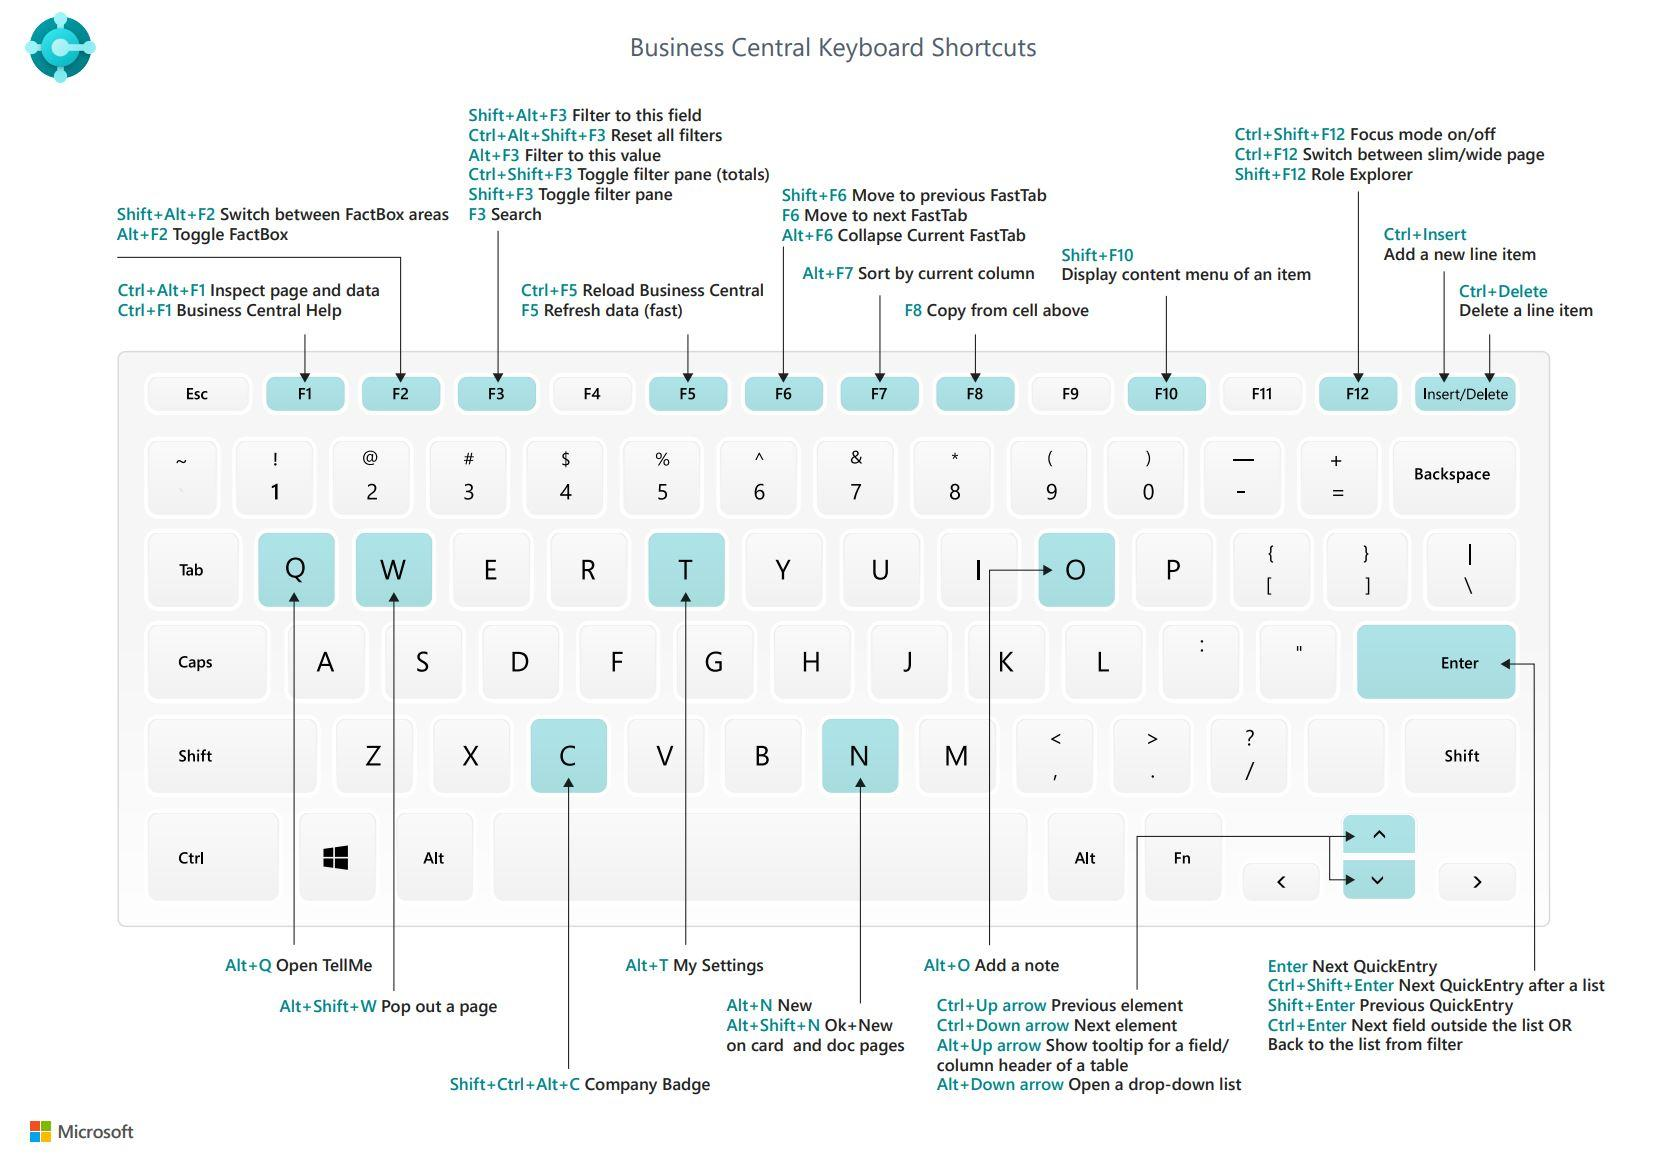 Dynamics 365 Business Central Keyboard Shortcuts Visual